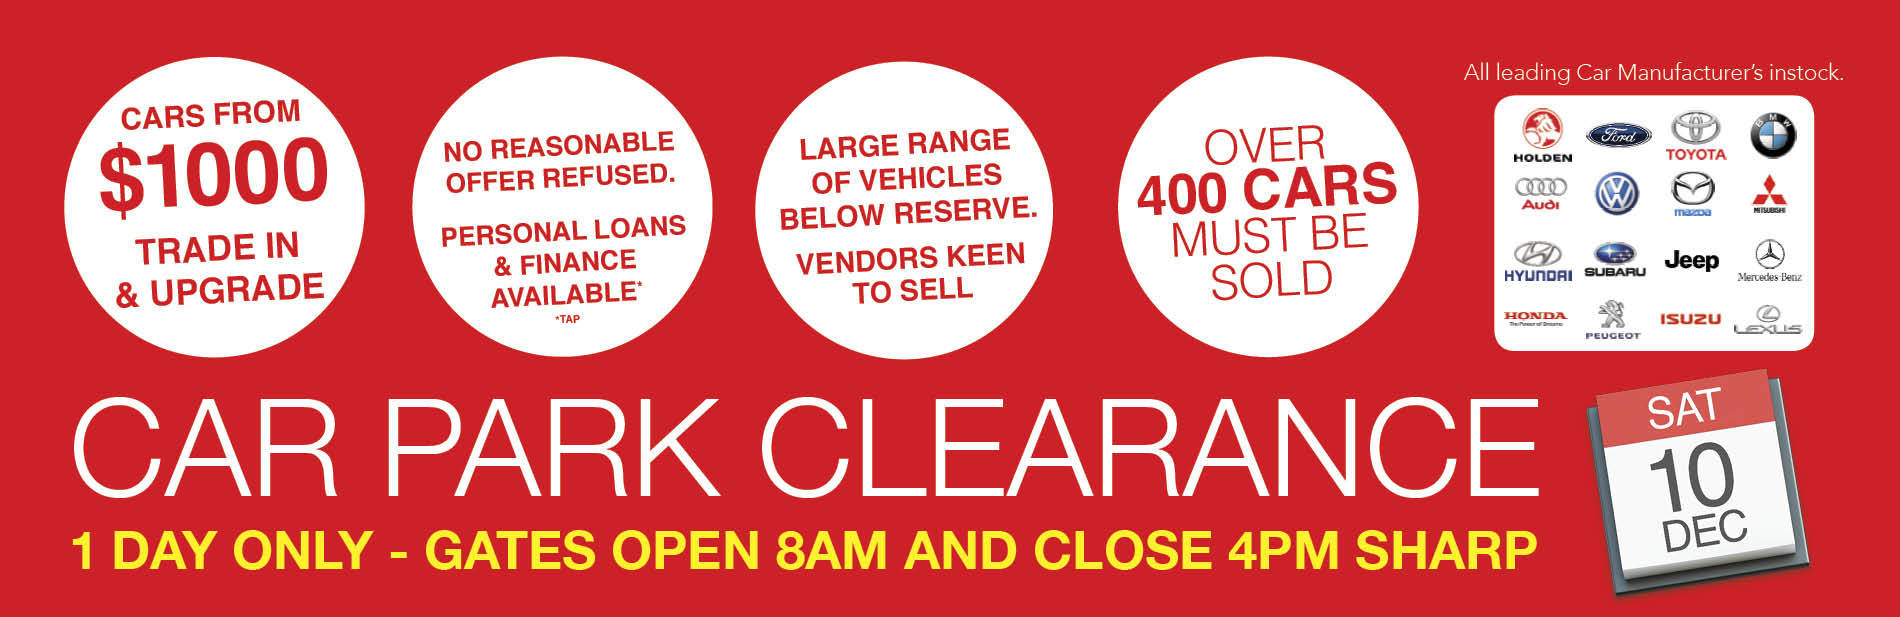 1 DAY ONLY - CAR PARK CLEARANCE - OVER 400 VEHCILES MUST BE SOLD